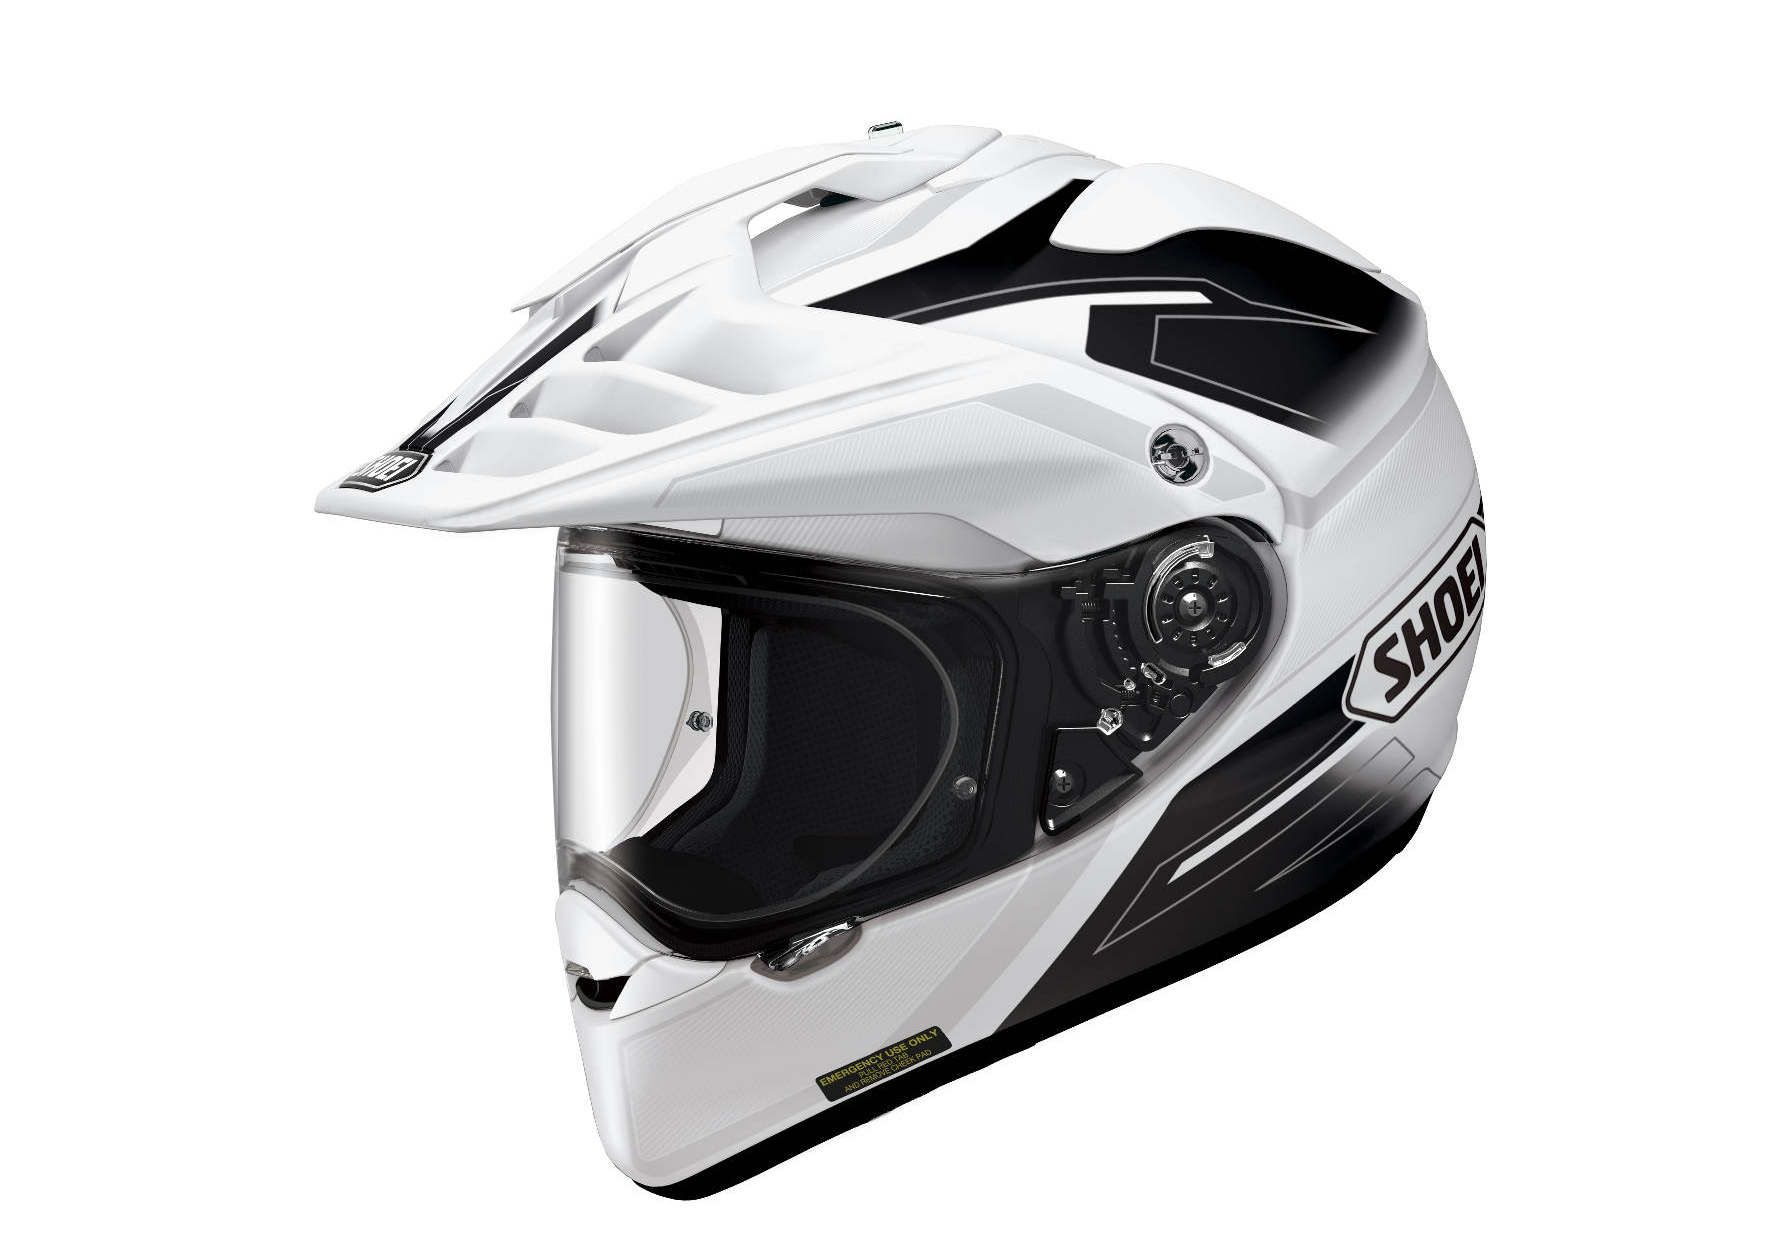 Top 5 Dual Sport Helmets (With images) Motorcycle